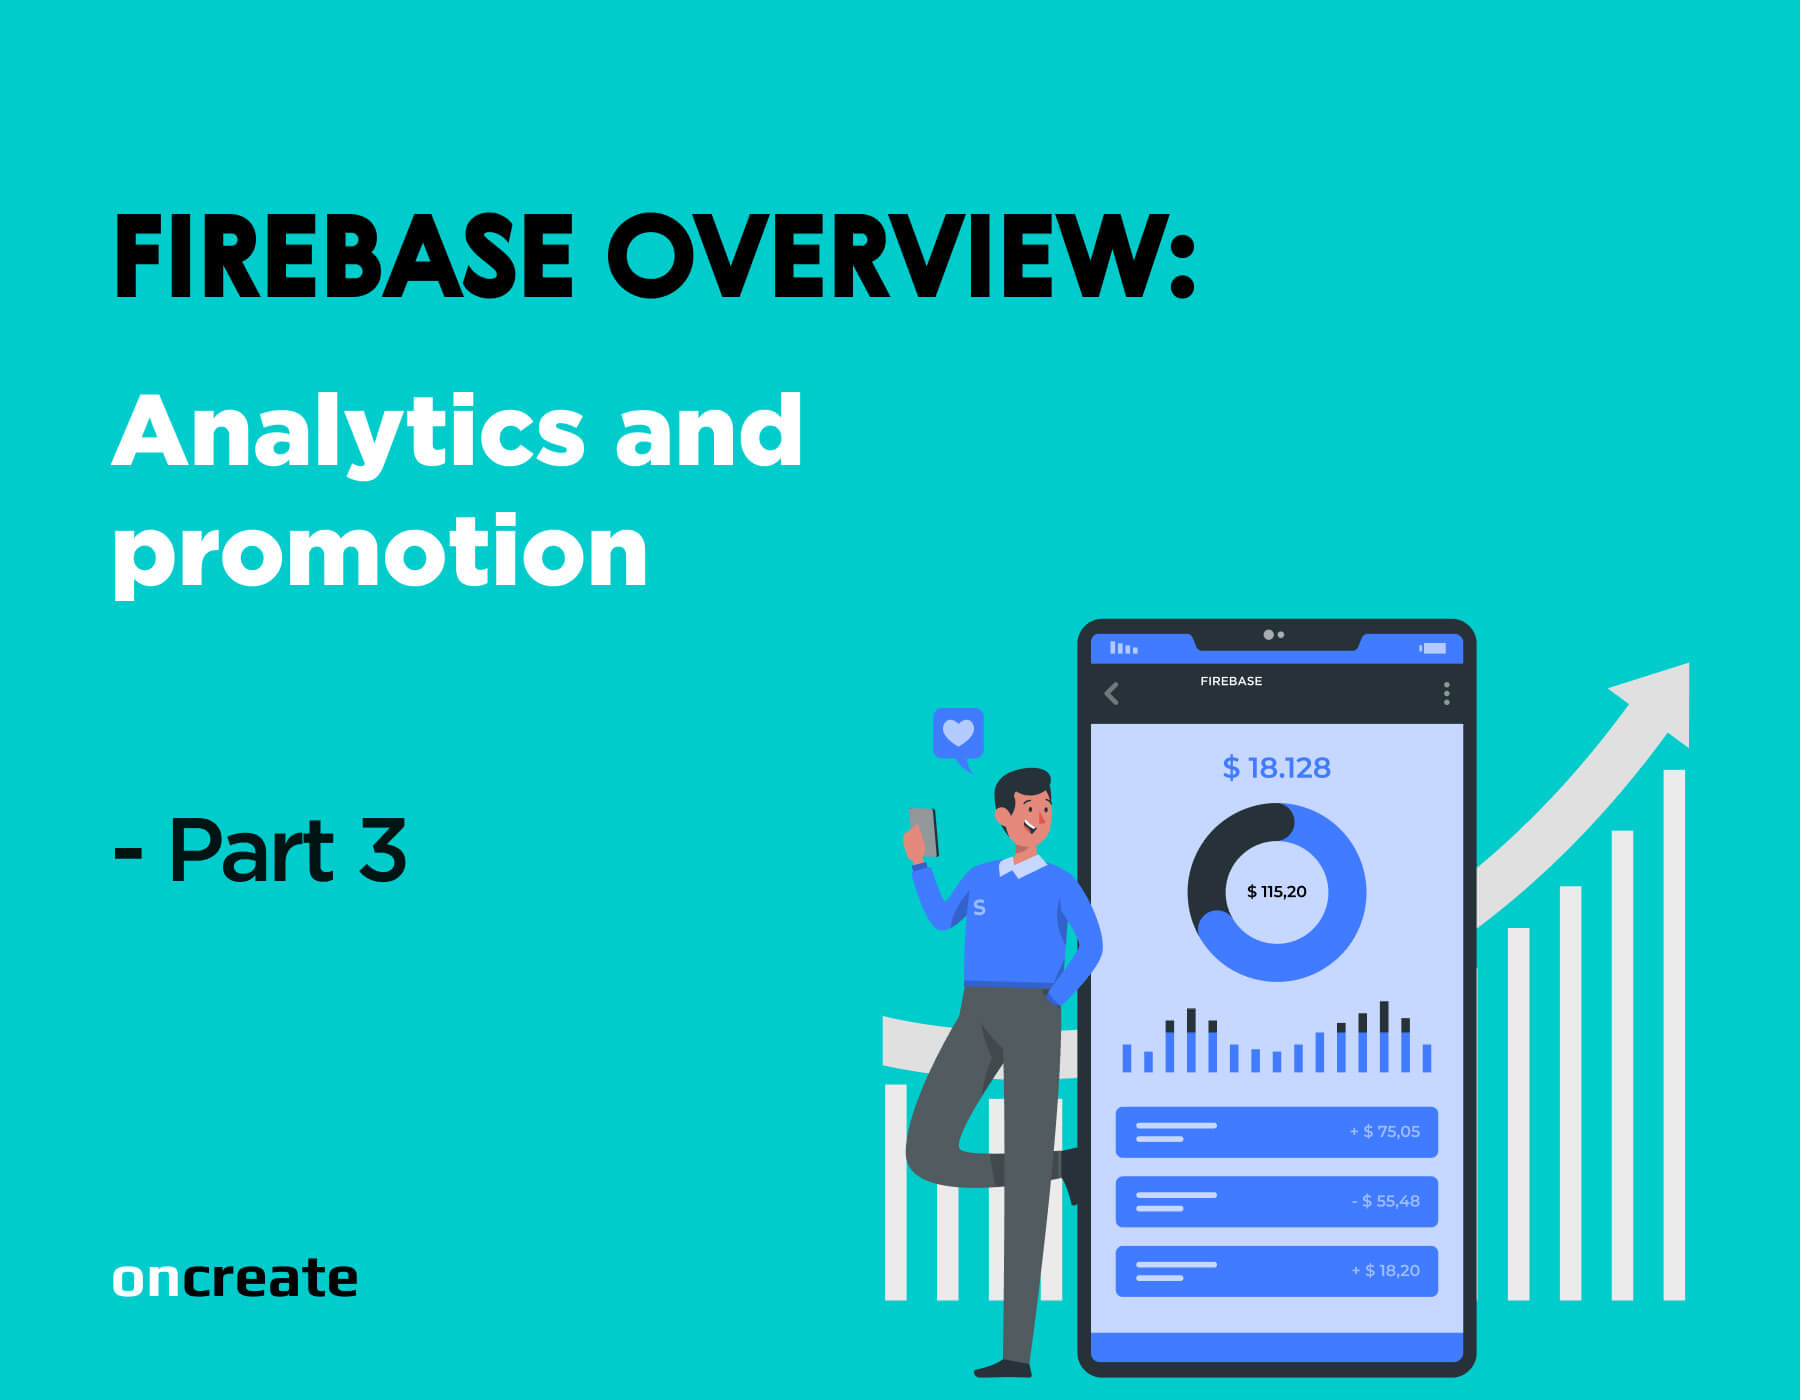 Firebase Overview: Analytics and Promotion